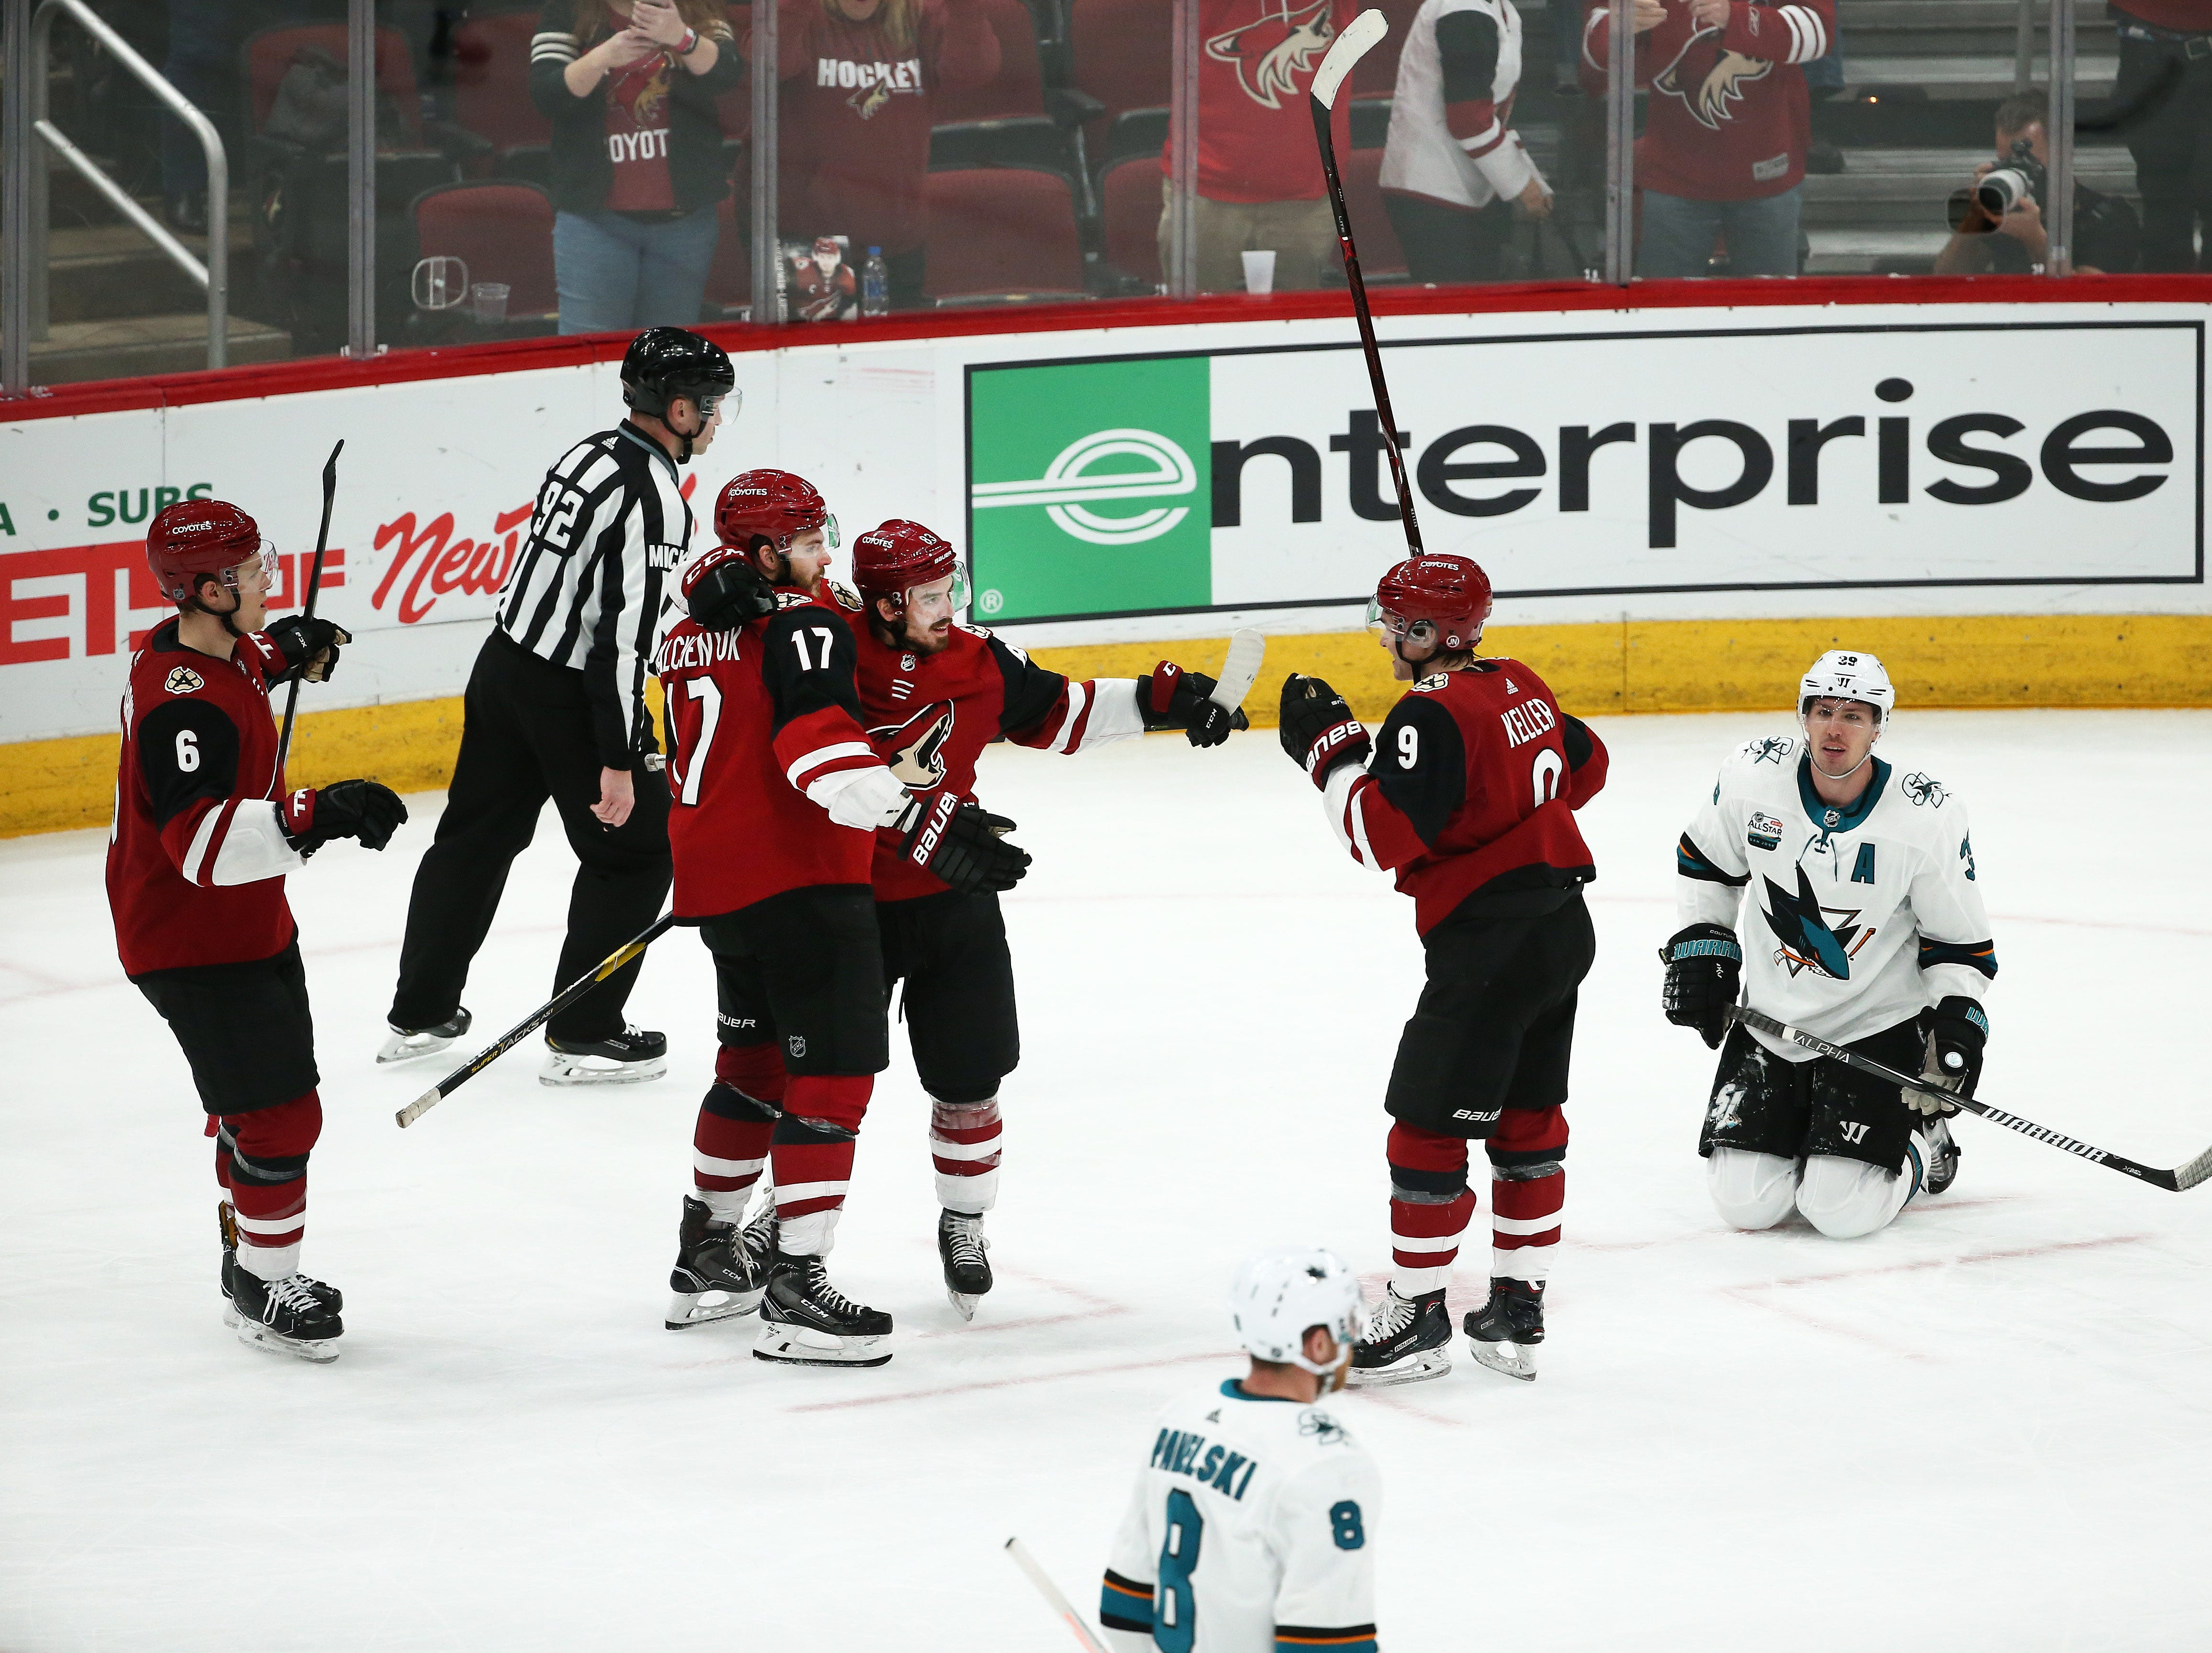 Arizona Coyotes Alex Galchenyuk (17) celebrates his goal against the San Jose Sharks in the third period on Jan. 16 at Gila River Arena.